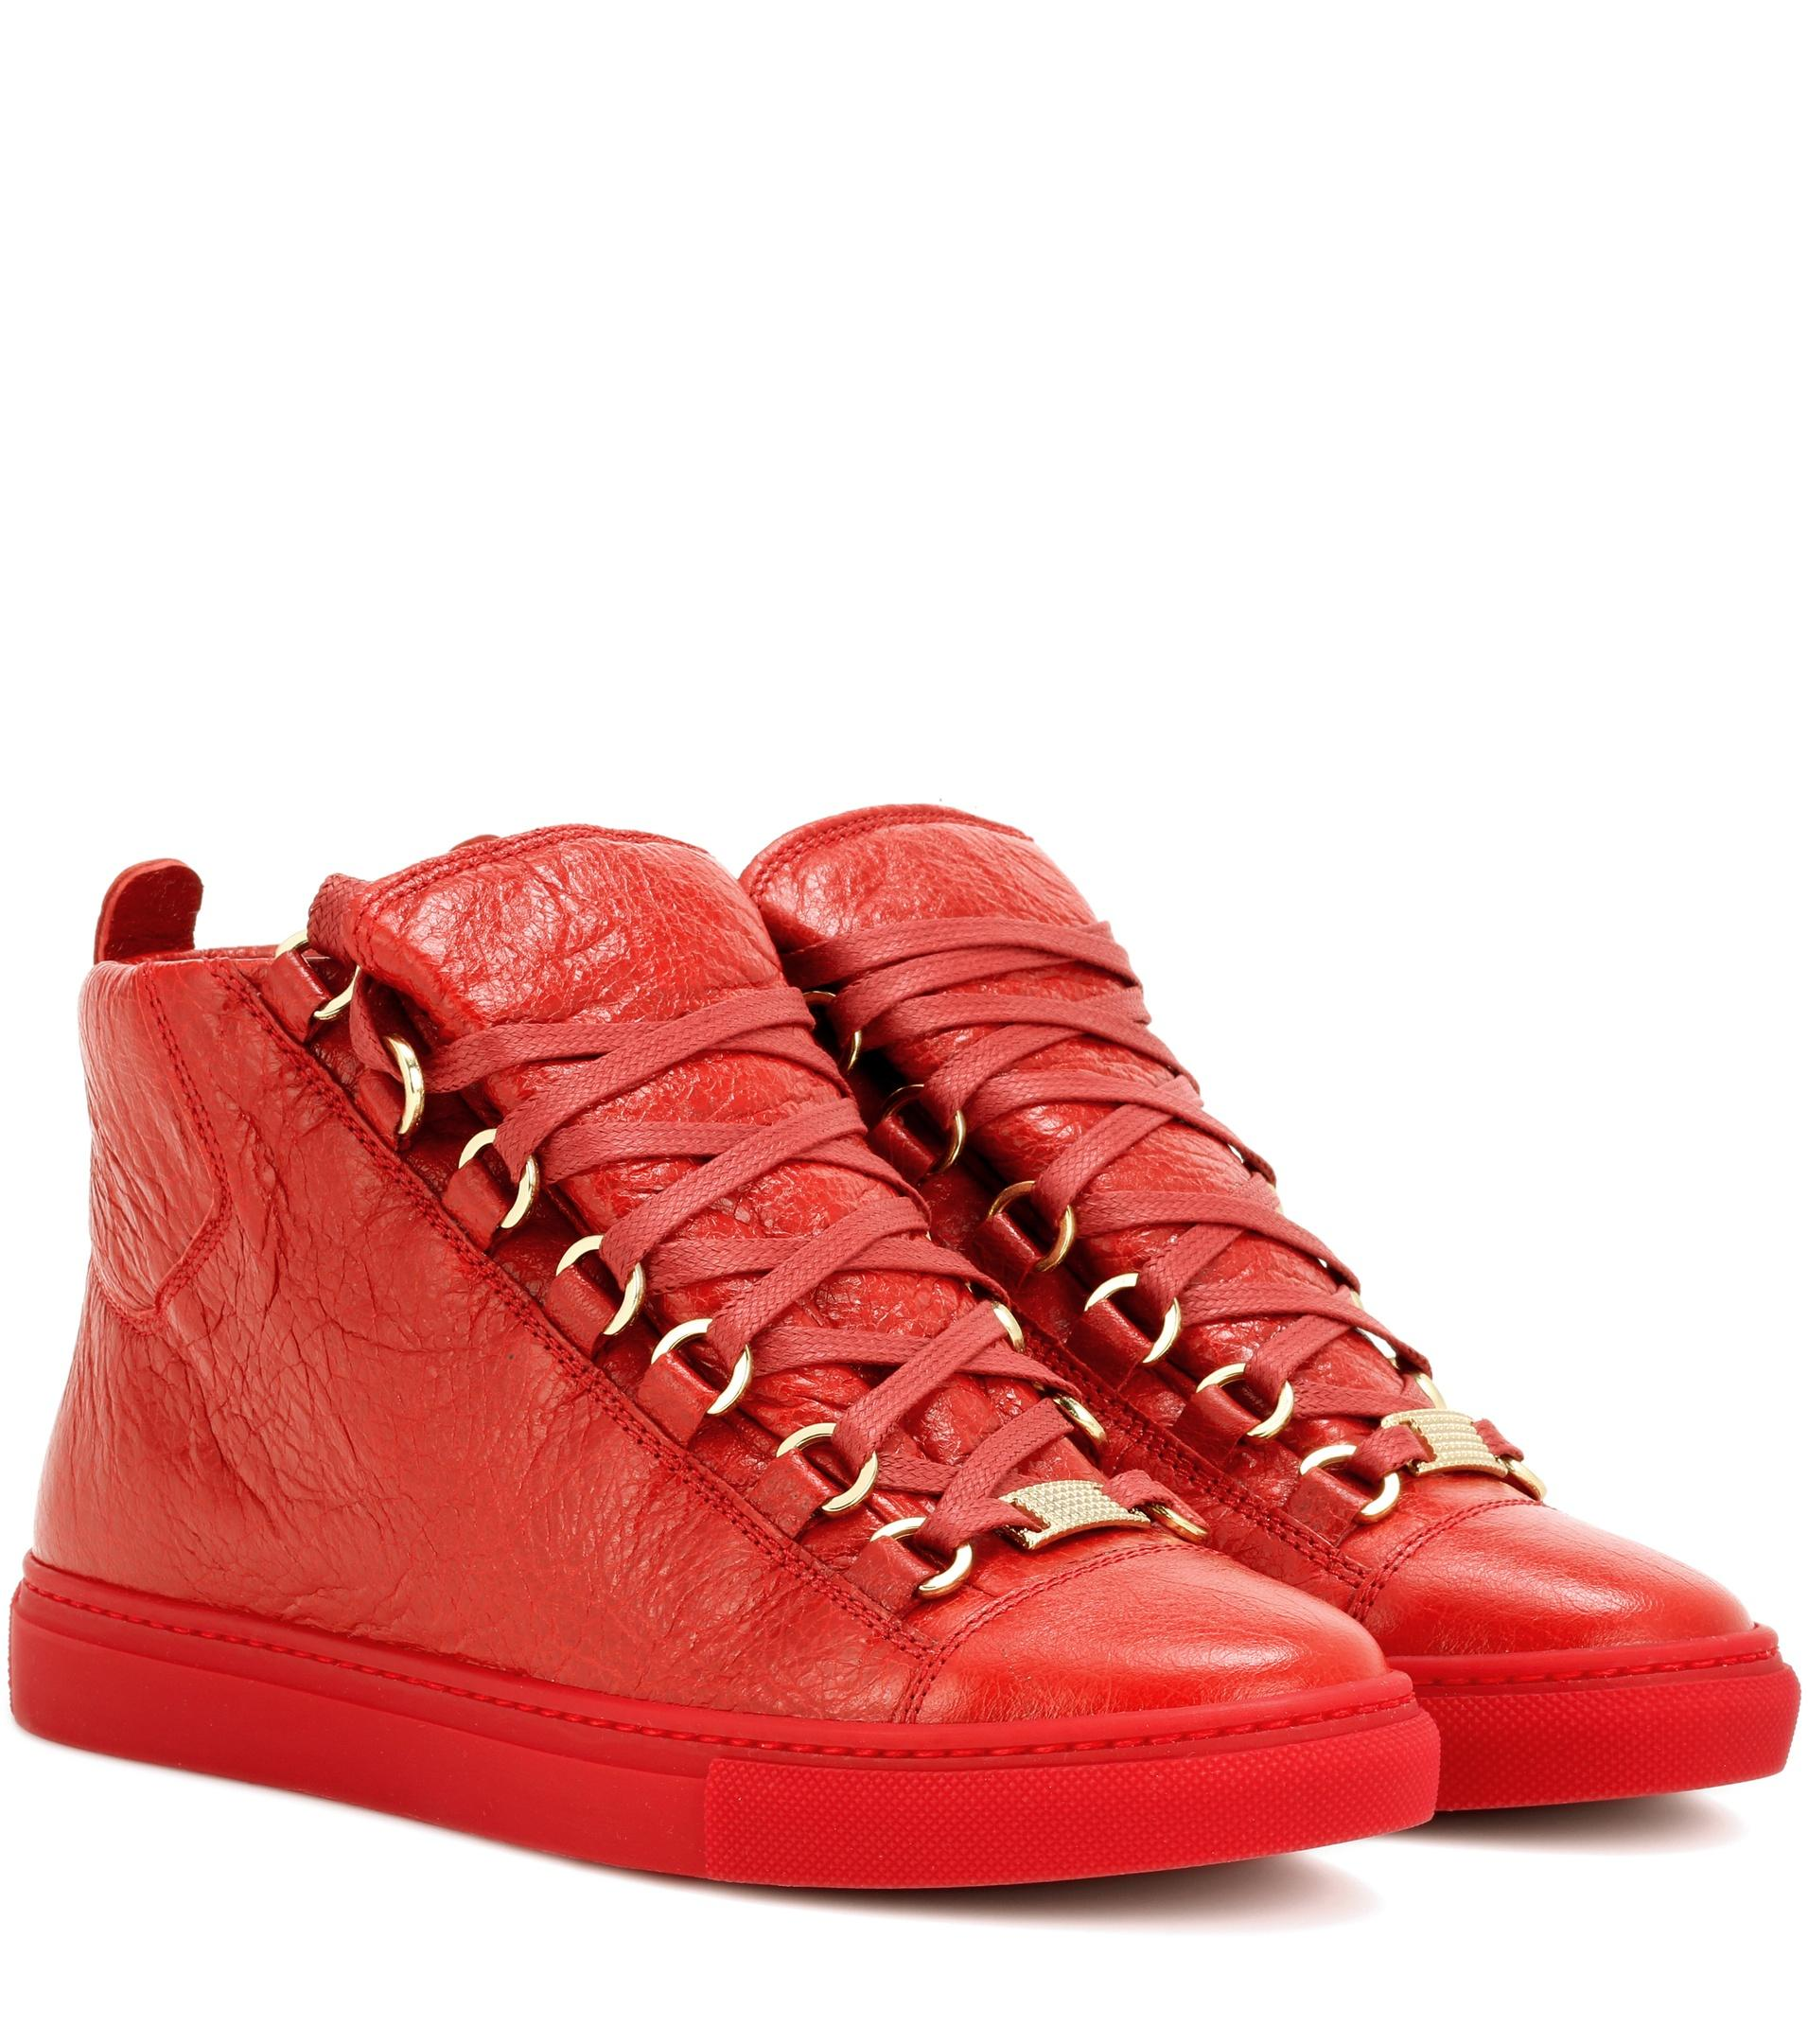 lyst balenciaga arena hightop leather sneakers in red